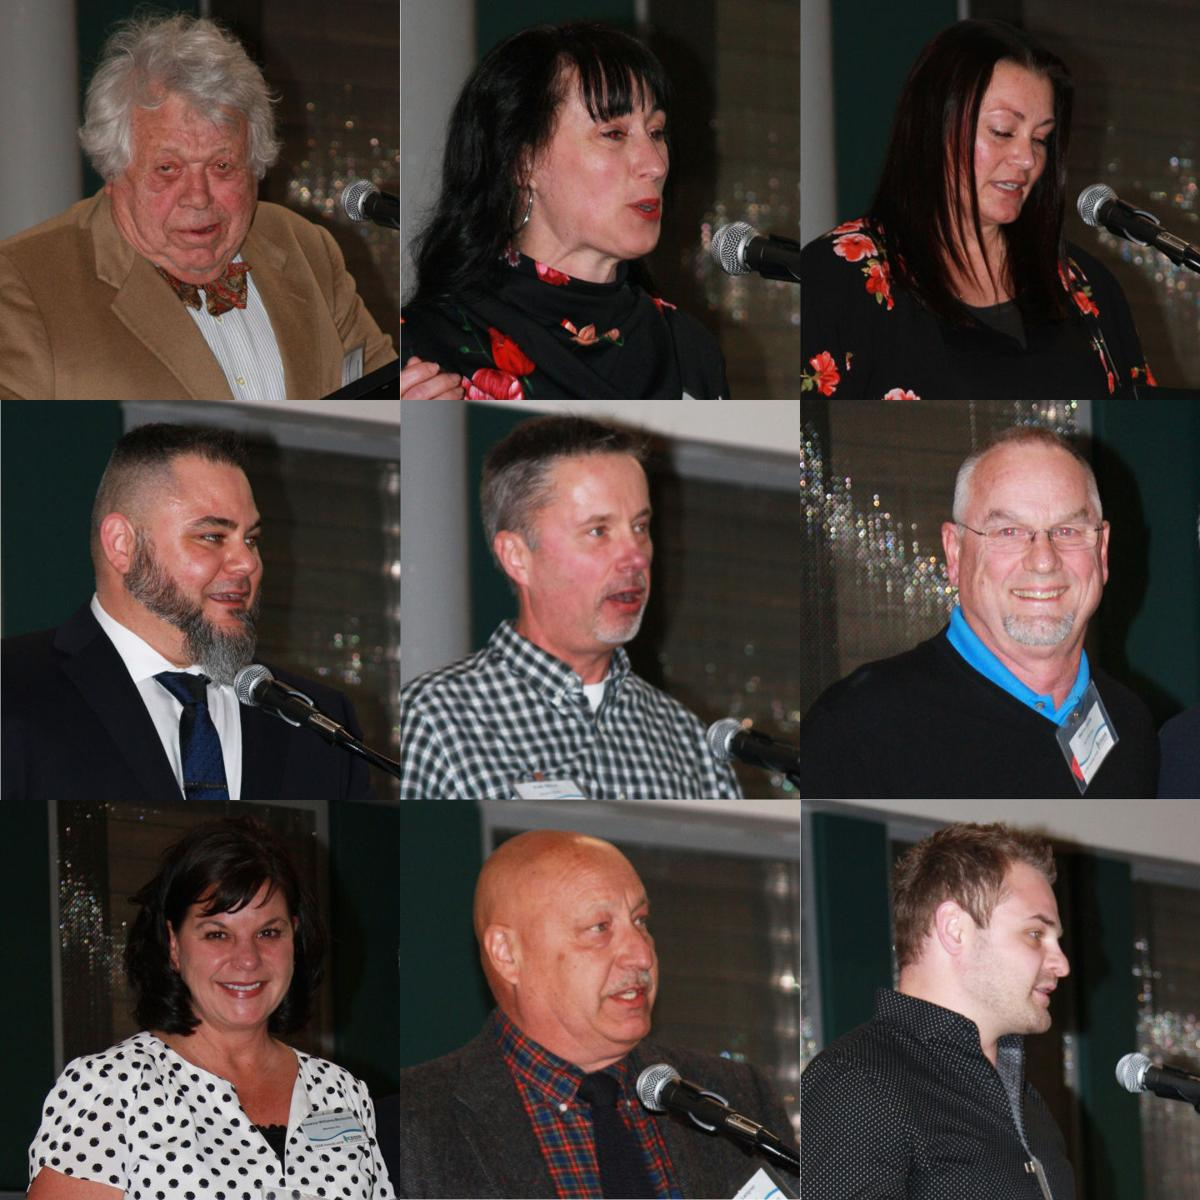 Local businesses honored for community impact